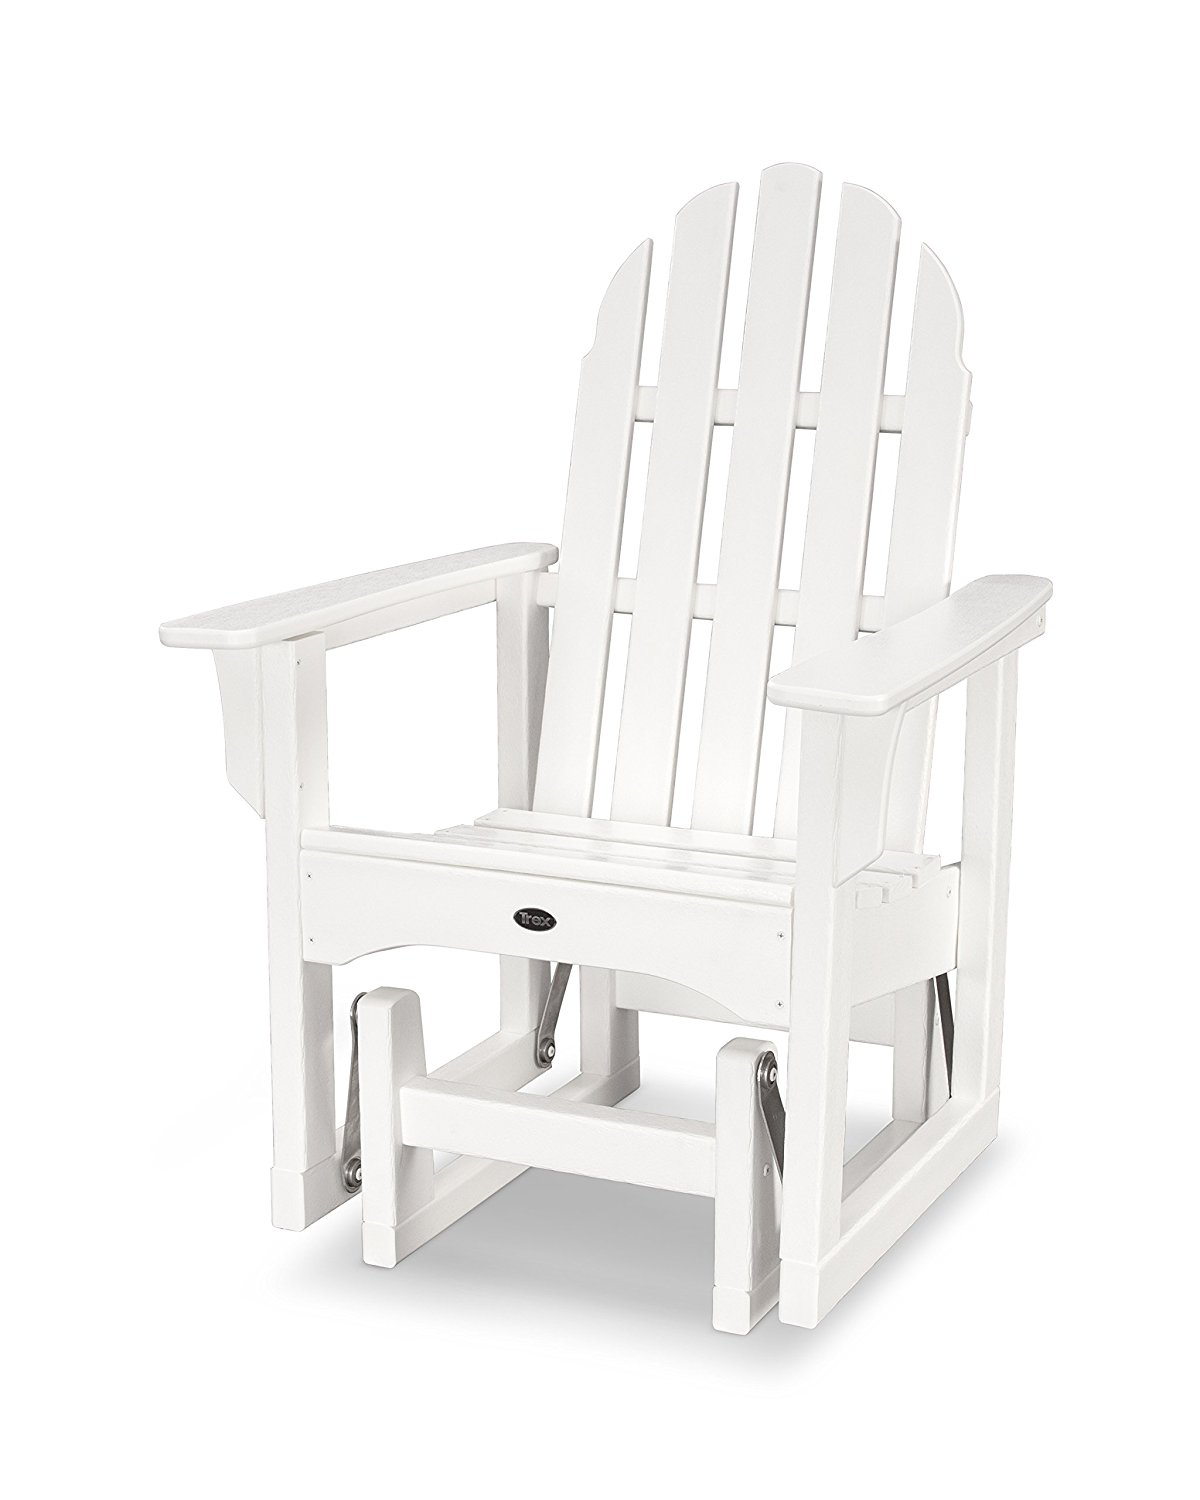 trex adirondack rocking chairs ergonomic quilting chair cheap white find deals on get quotations outdoor furniture cape cod glider in classic